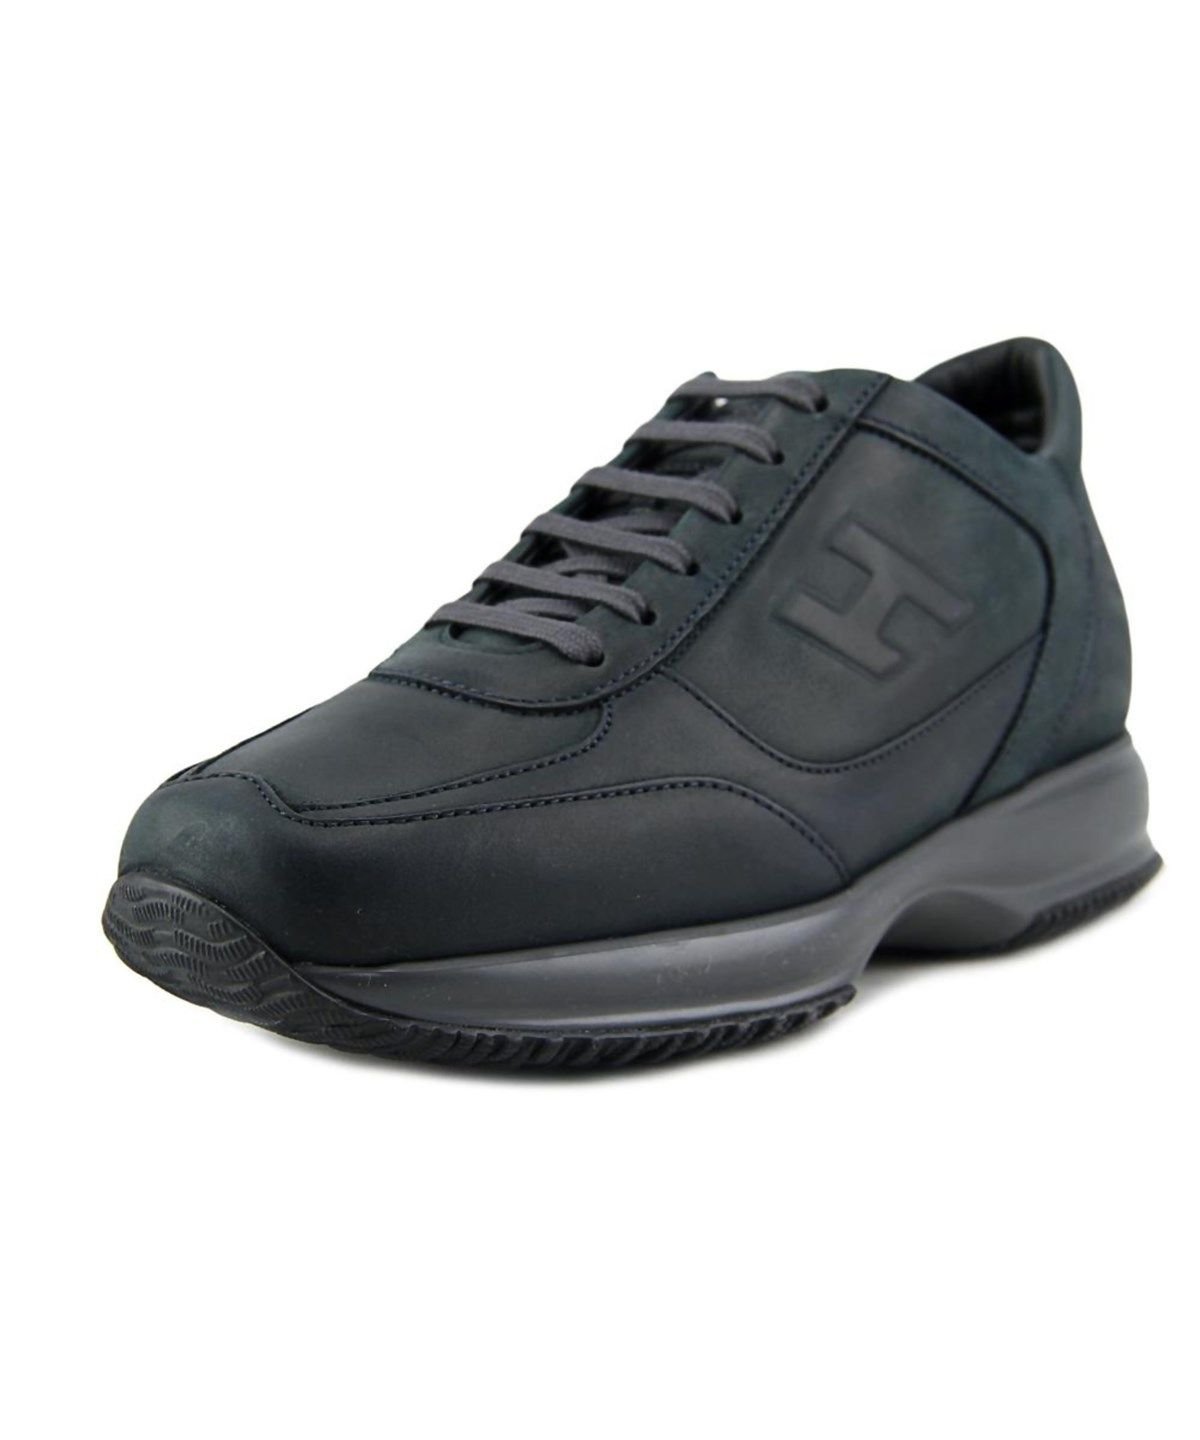 HOGAN Hogan Interactive N20 Sneaker H Rilievo Men Round Toe Leather Black  Sneakers'. #